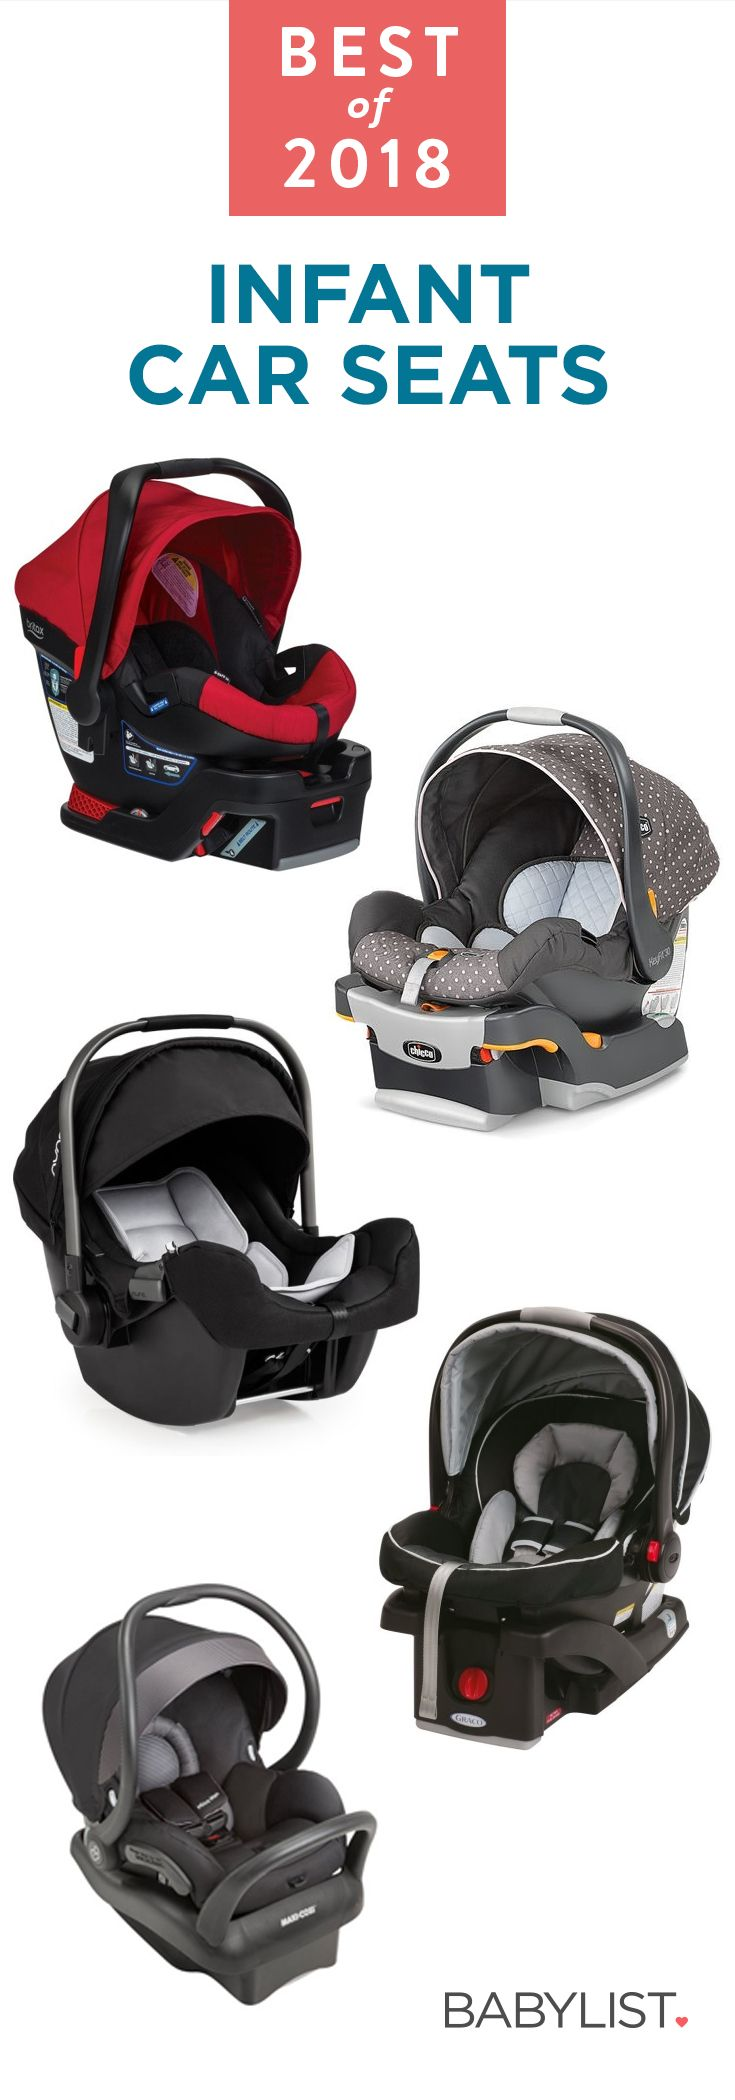 Best Infant Car Seats of 2019 For the little ones